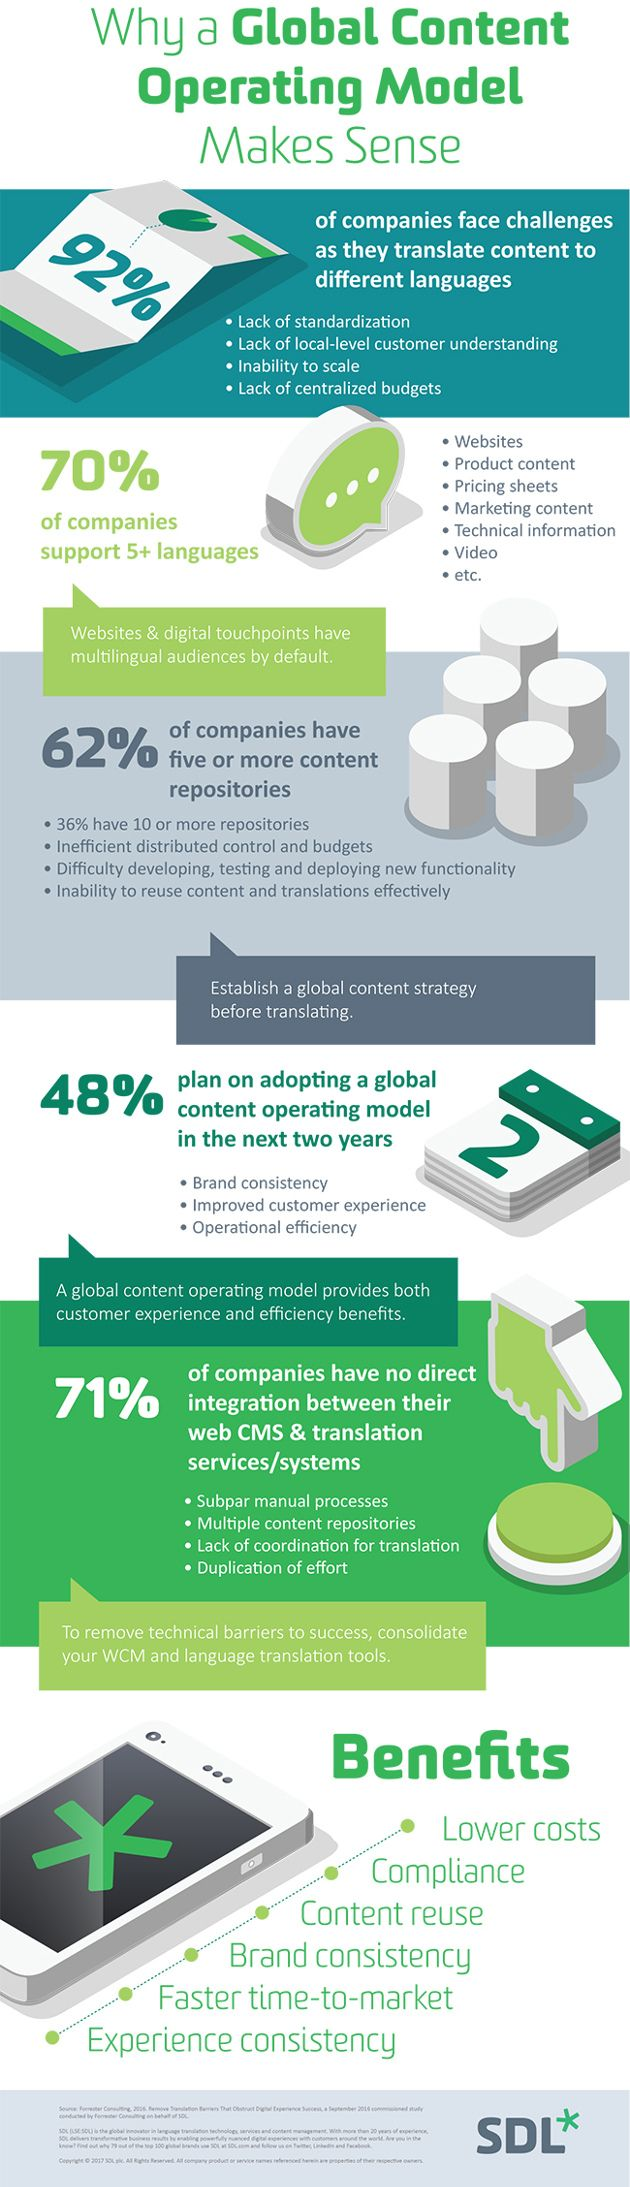 Why a Global Content Operating Model Makes Sense (Infographic)